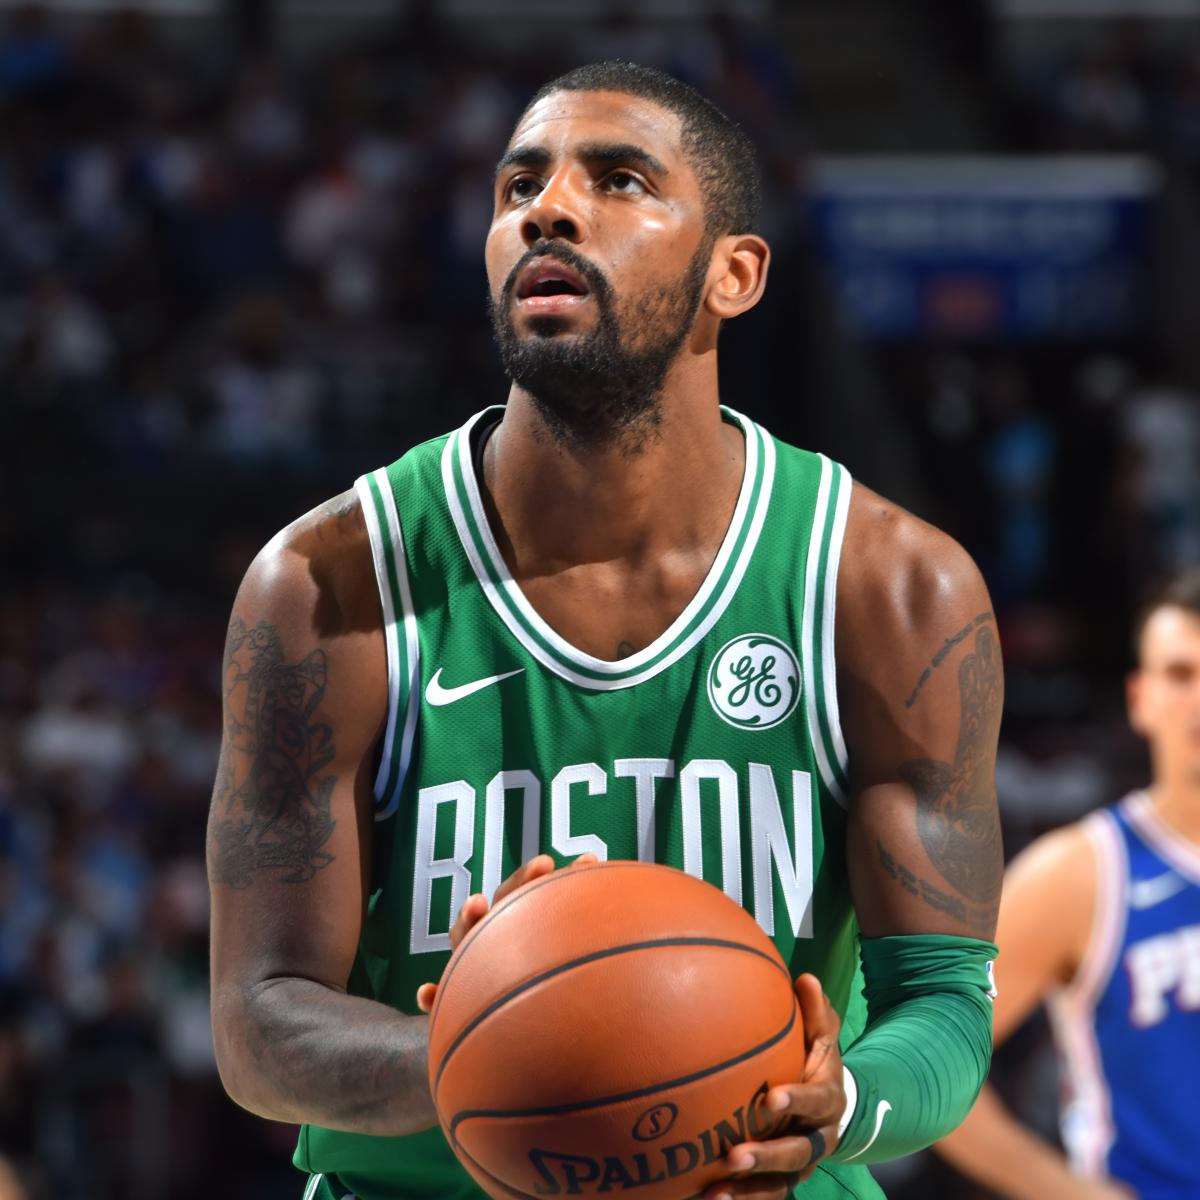 Kyrie Irving on If He Regrets Making Profane Comments Towards Fan: 'Hell No'